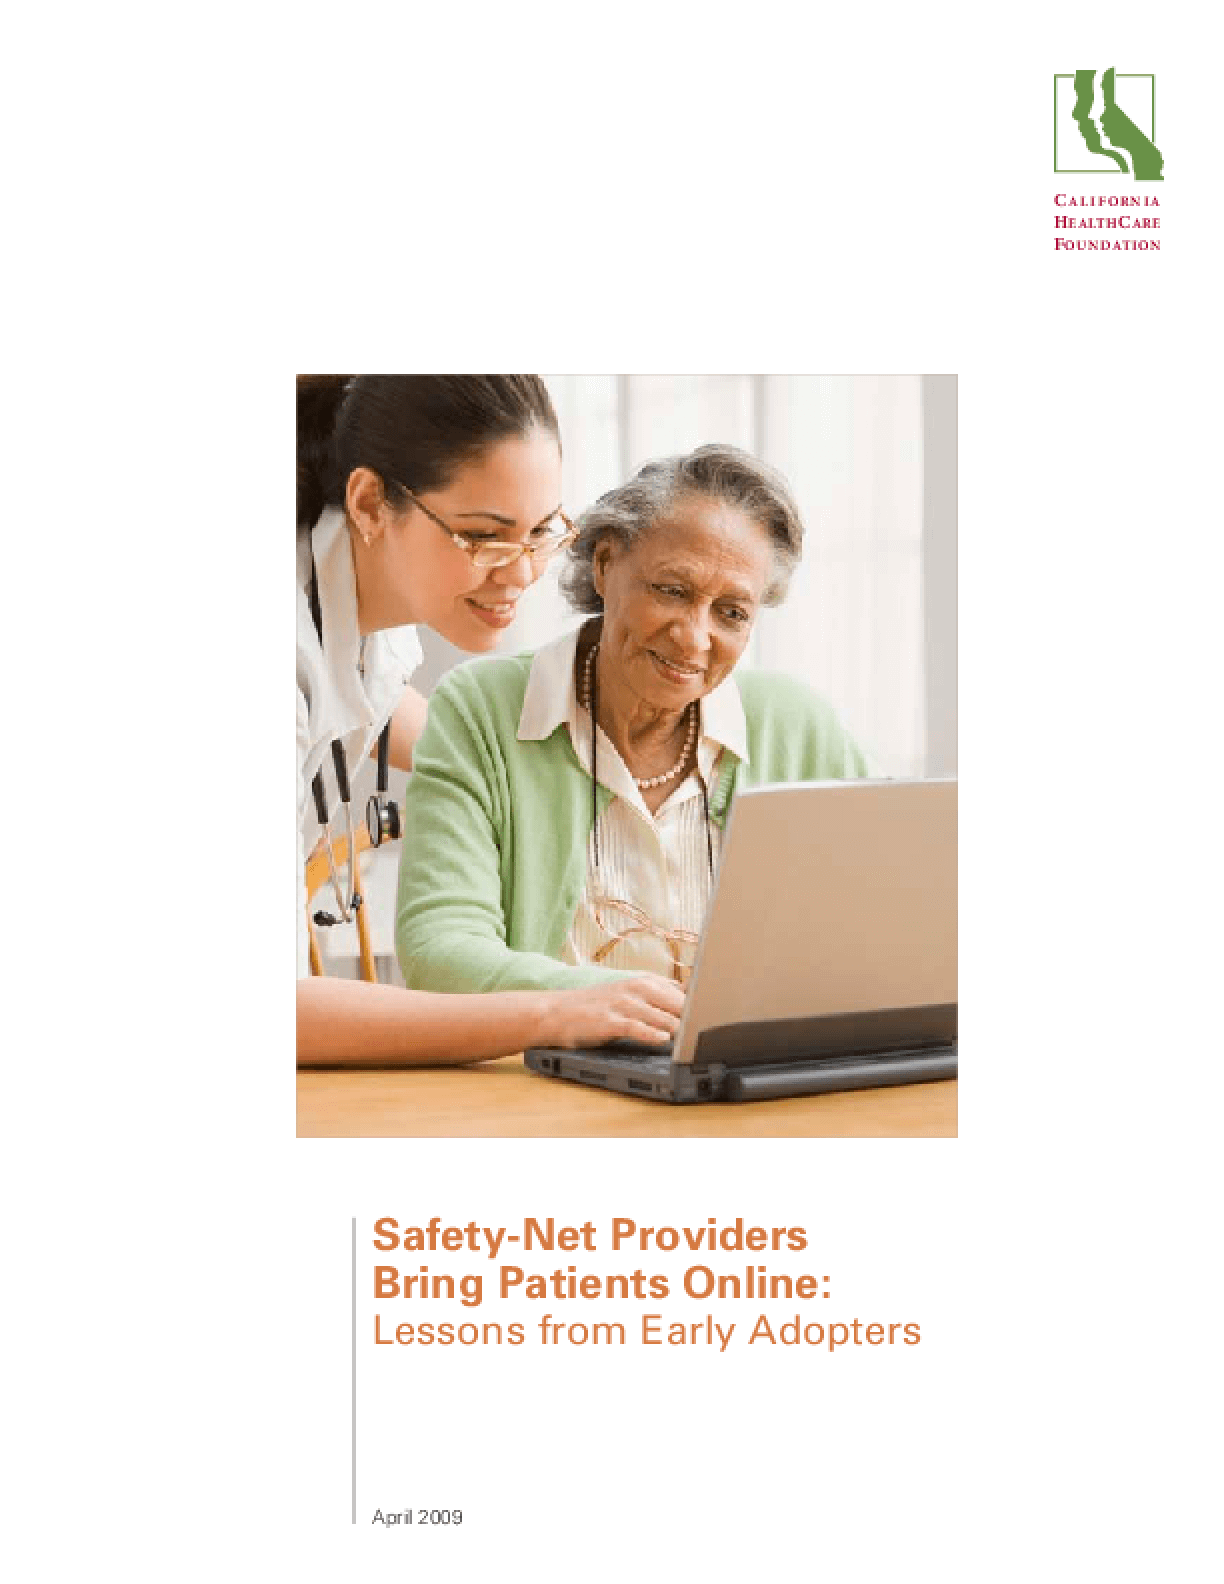 Safety-Net Providers Bring Patients Online: Lessons From Early Adopters